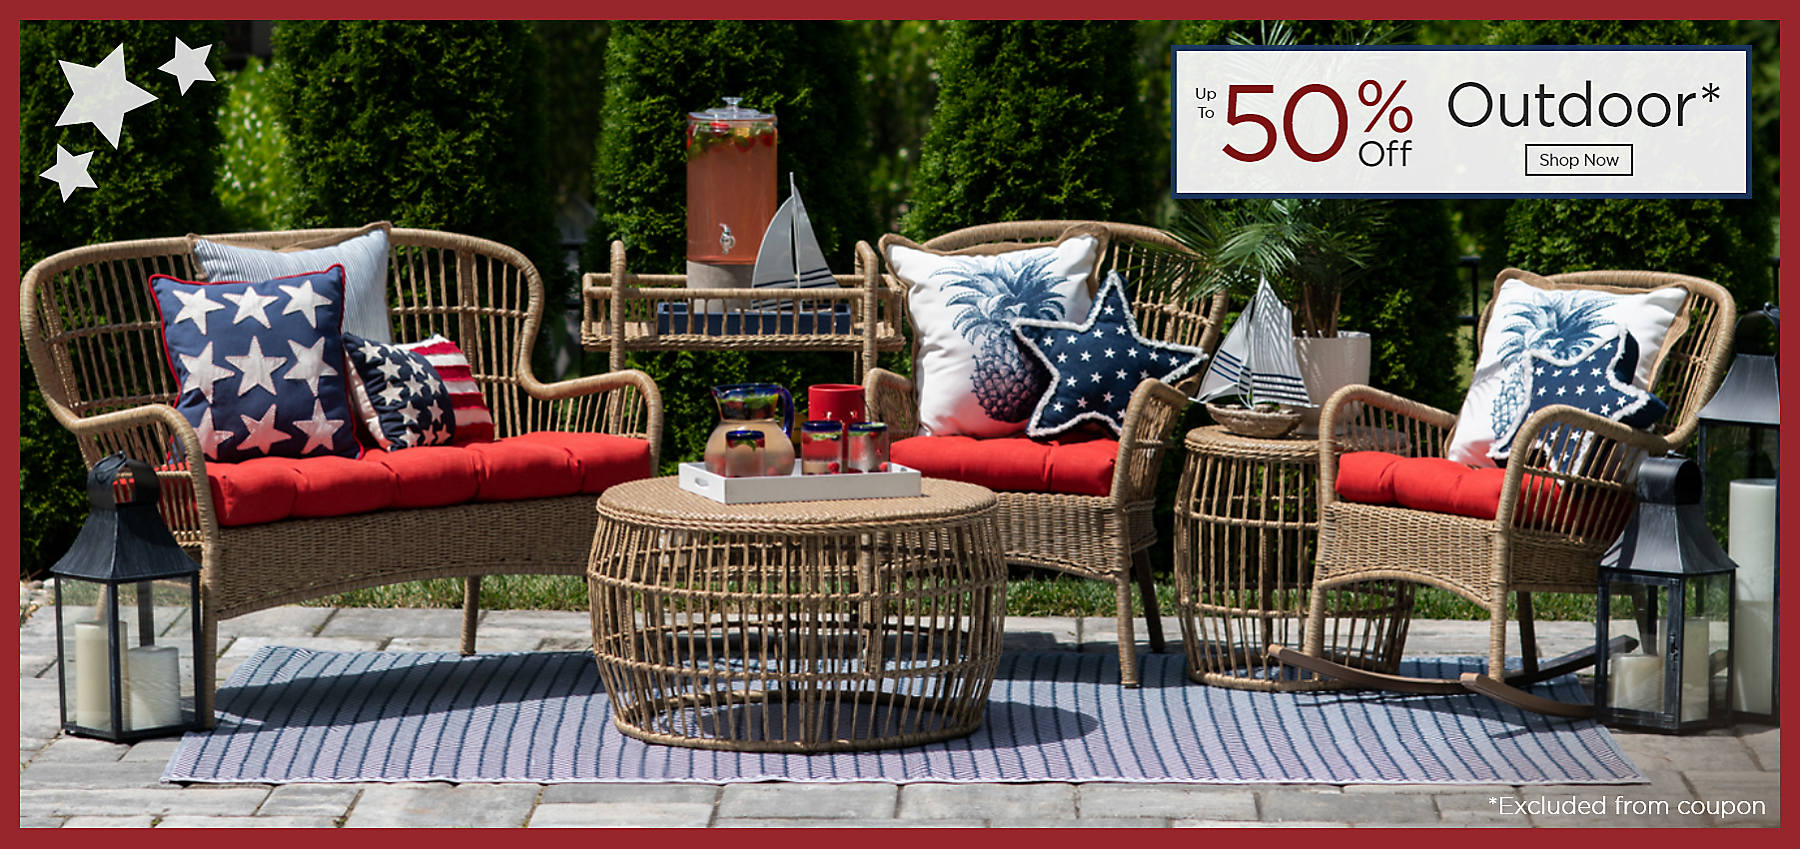 Outdoor Up to 50% Off Shop Now Excluded from coupon